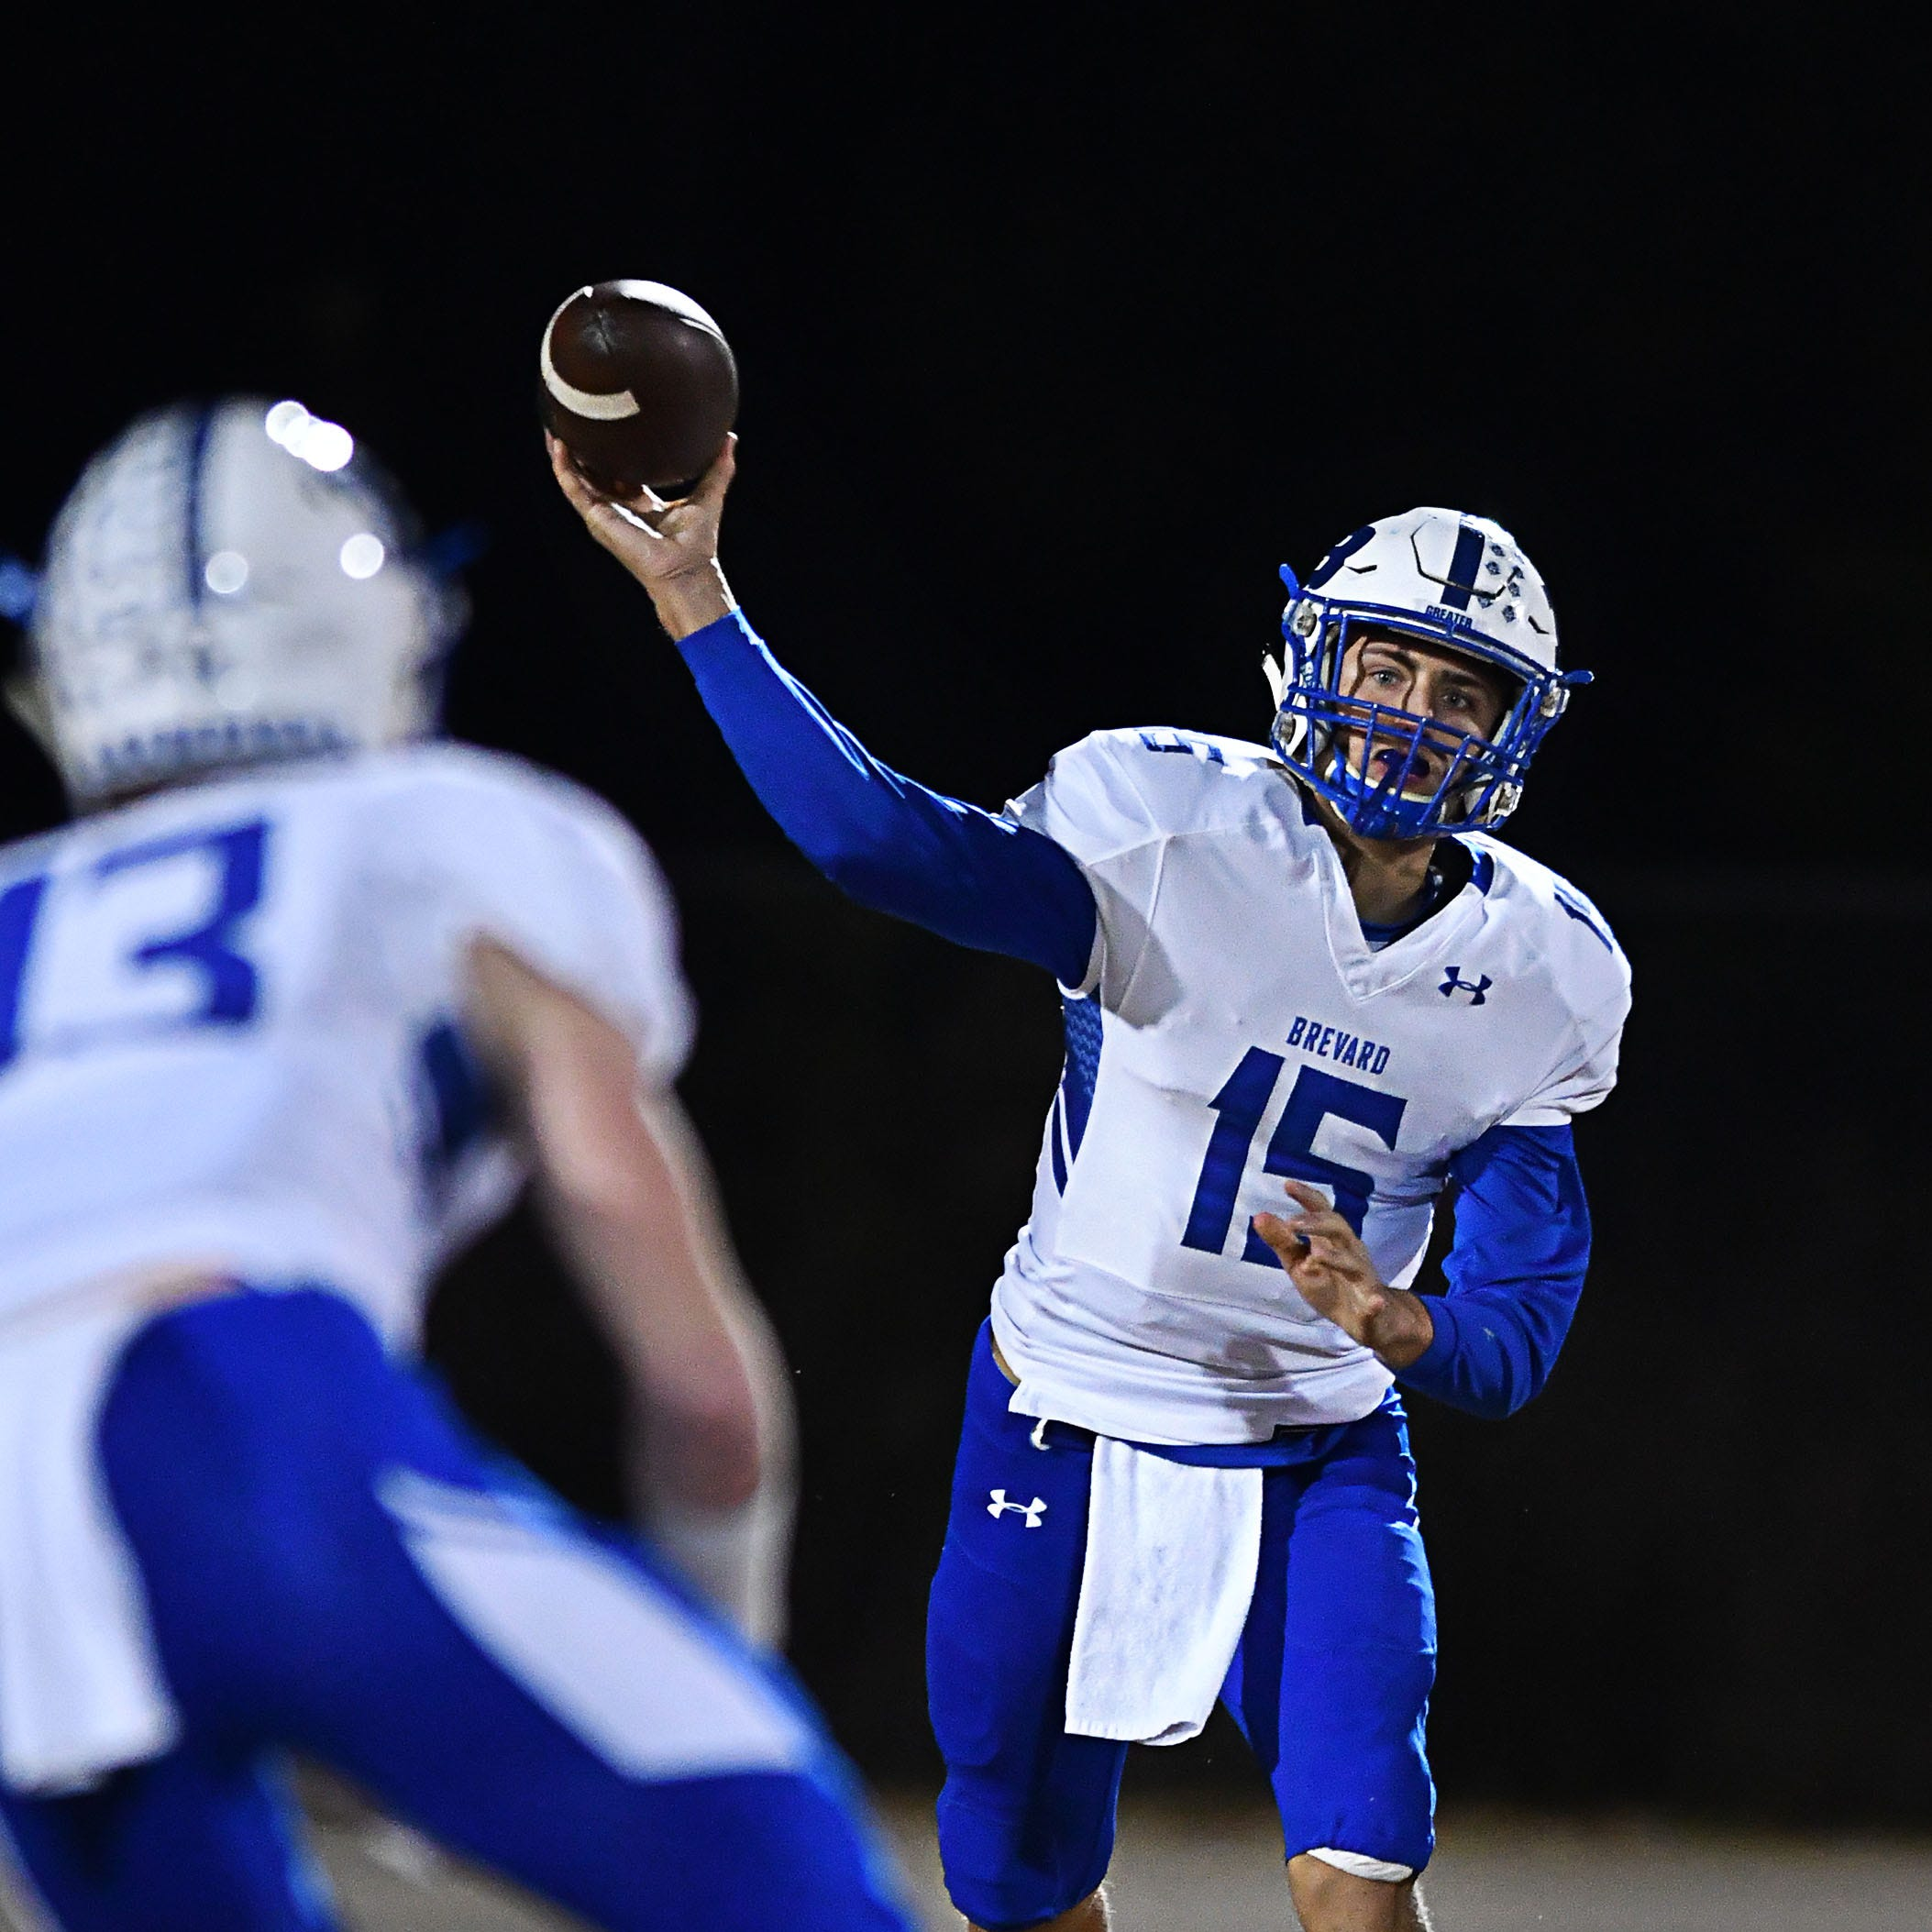 WNC high school football: Offers and invites